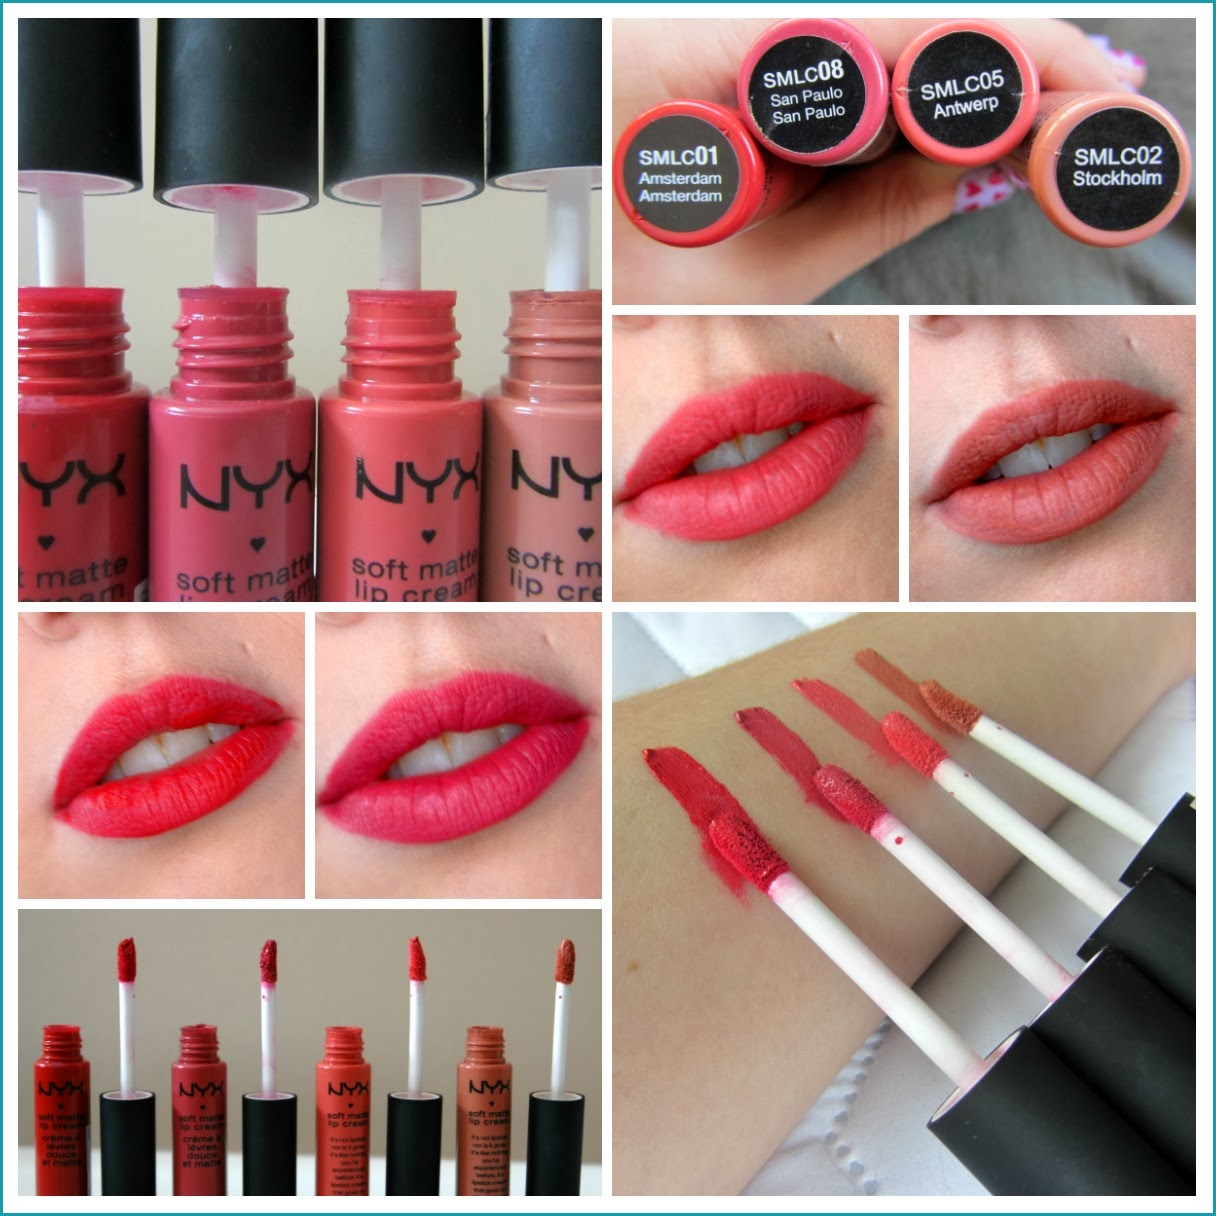 NYX Soft Matte Lip Cream, Amsterdam, San Paulo, Antwerp, Stockholm, Review and Swatches